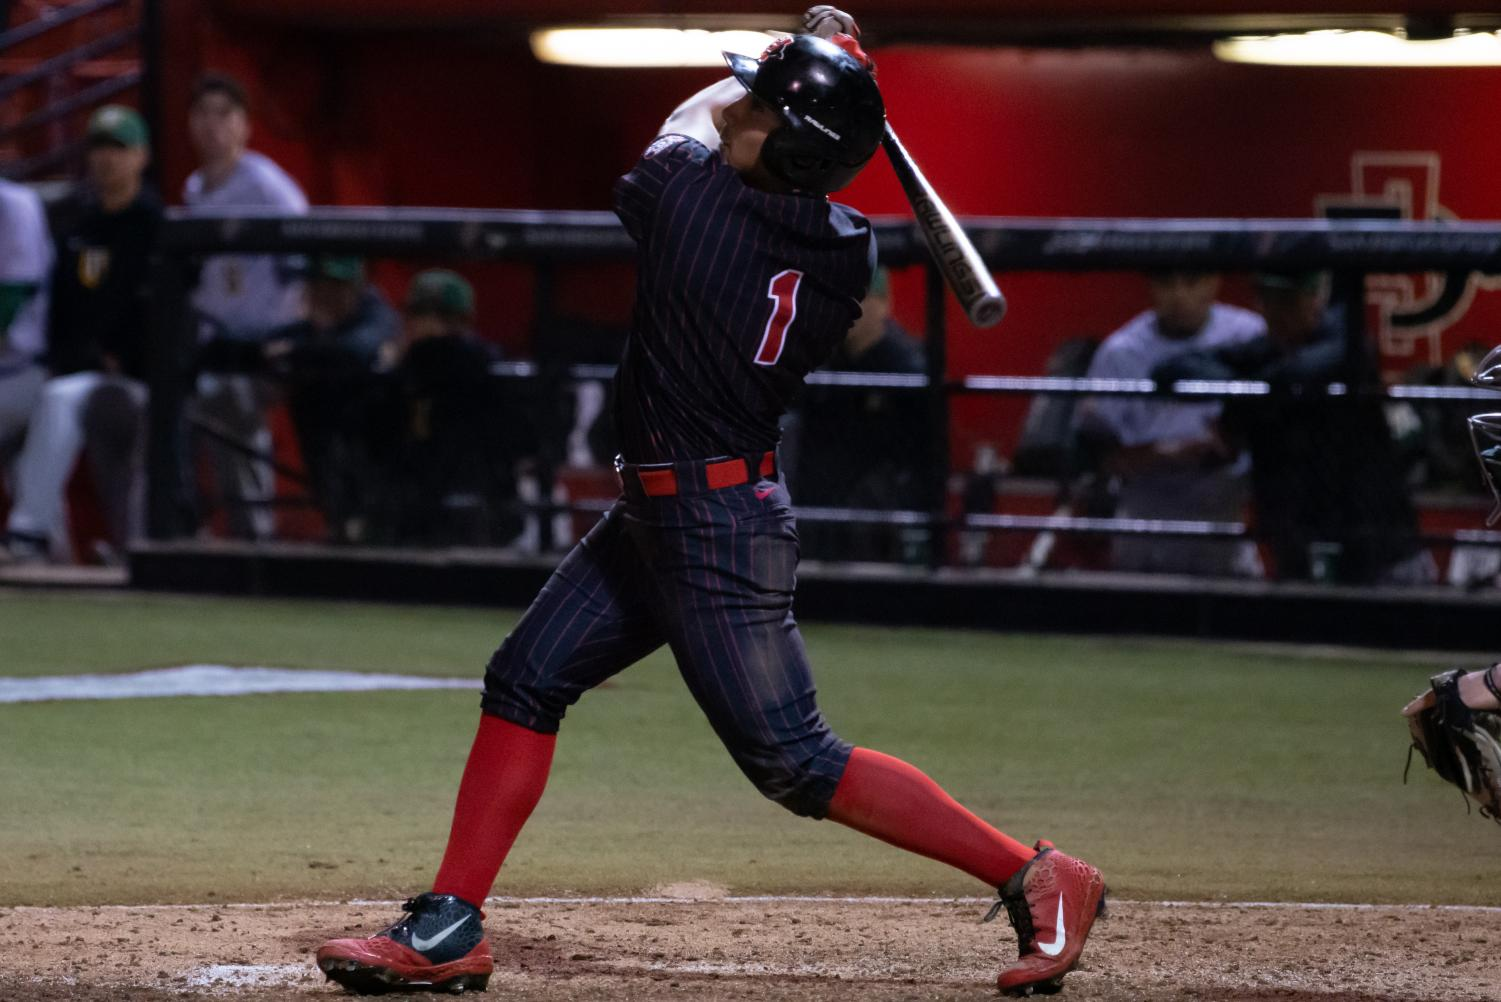 Junior outfielder Julian Escobedo follows through on a swing during the Aztecs 8-4 victory over USF on Feb. 15 at Tony Gwynn Stadium.